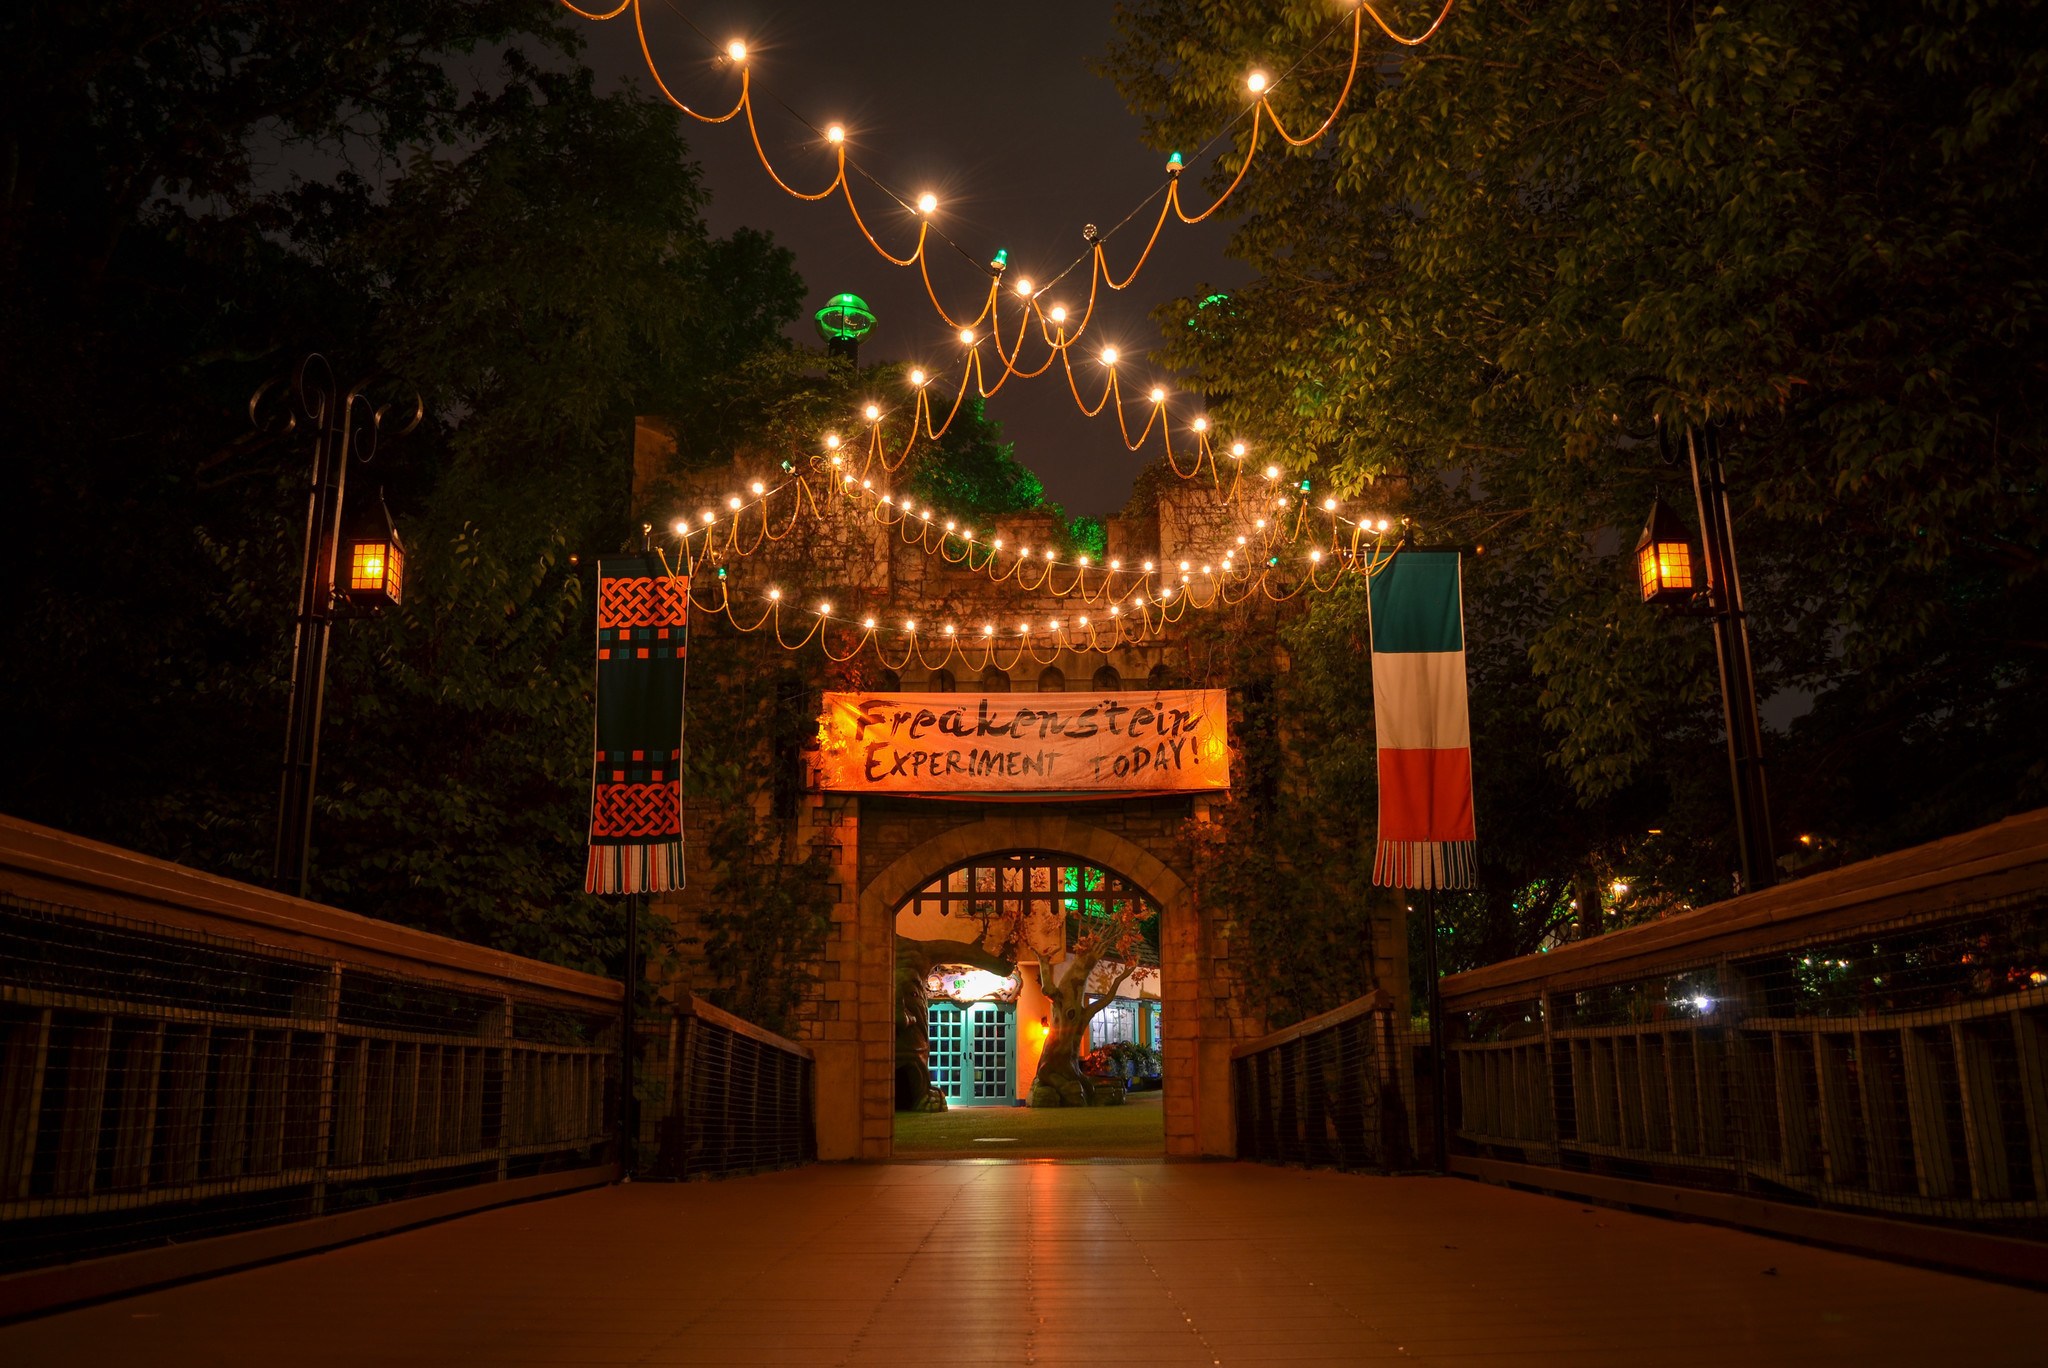 Busch gardens adds new haunted house to howl o scream - Busch gardens williamsburg halloween ...